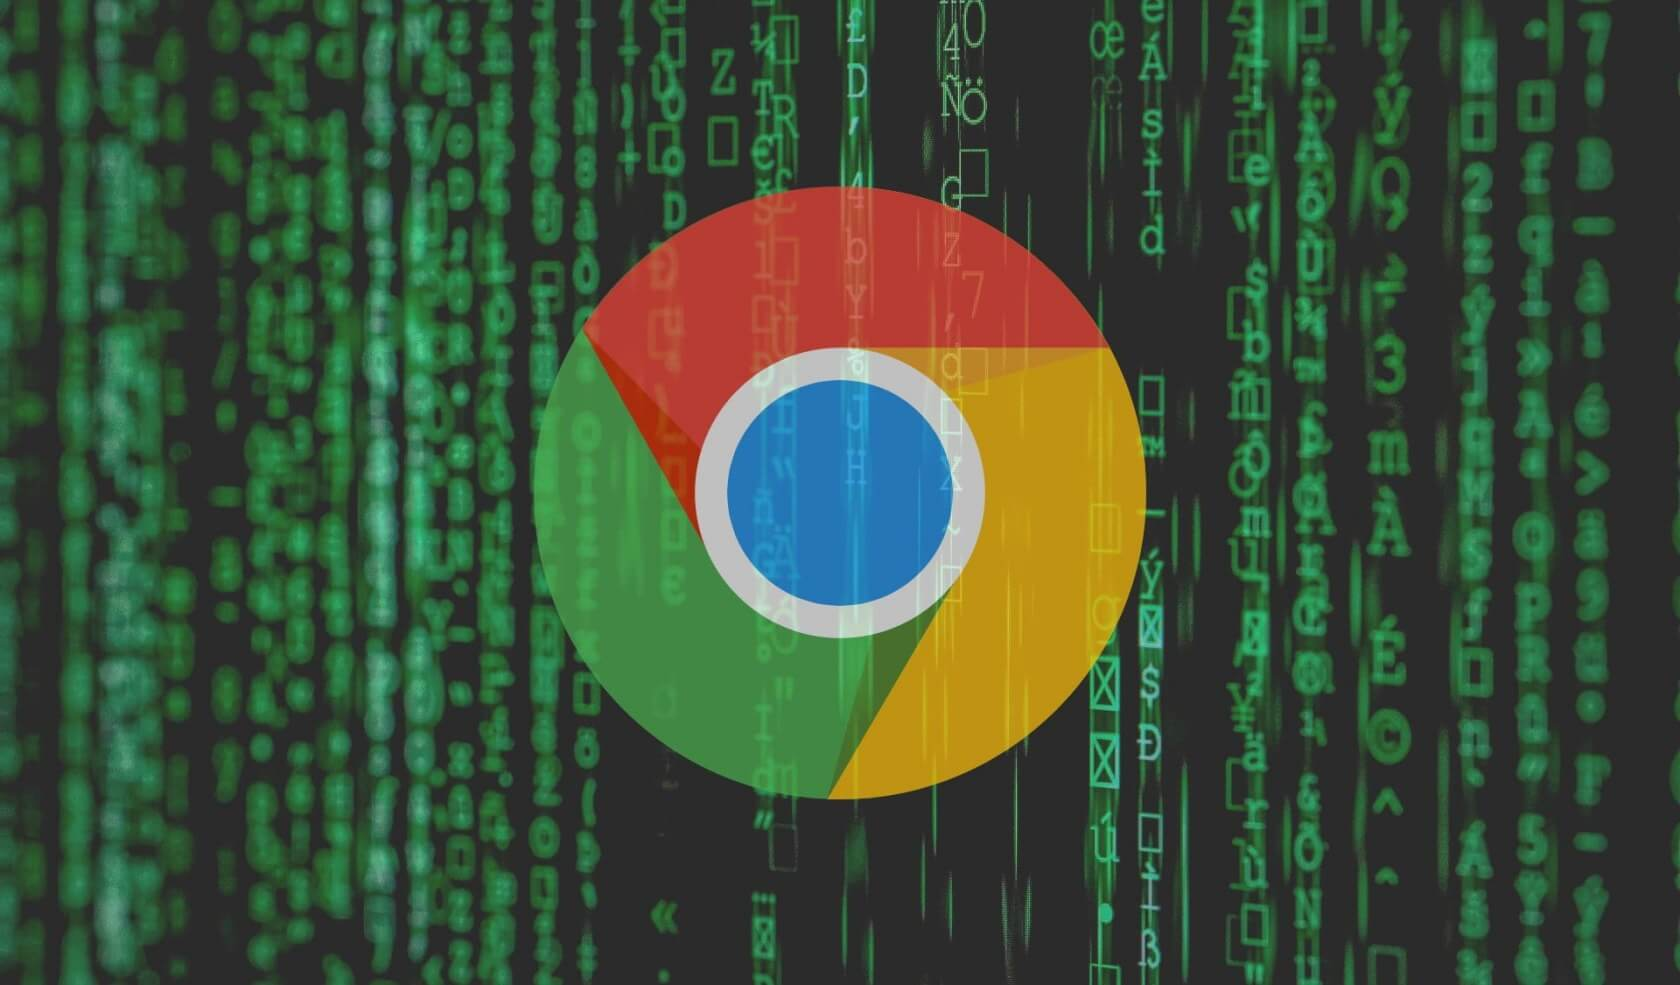 Google wants you to update Chrome right now - TechSpot